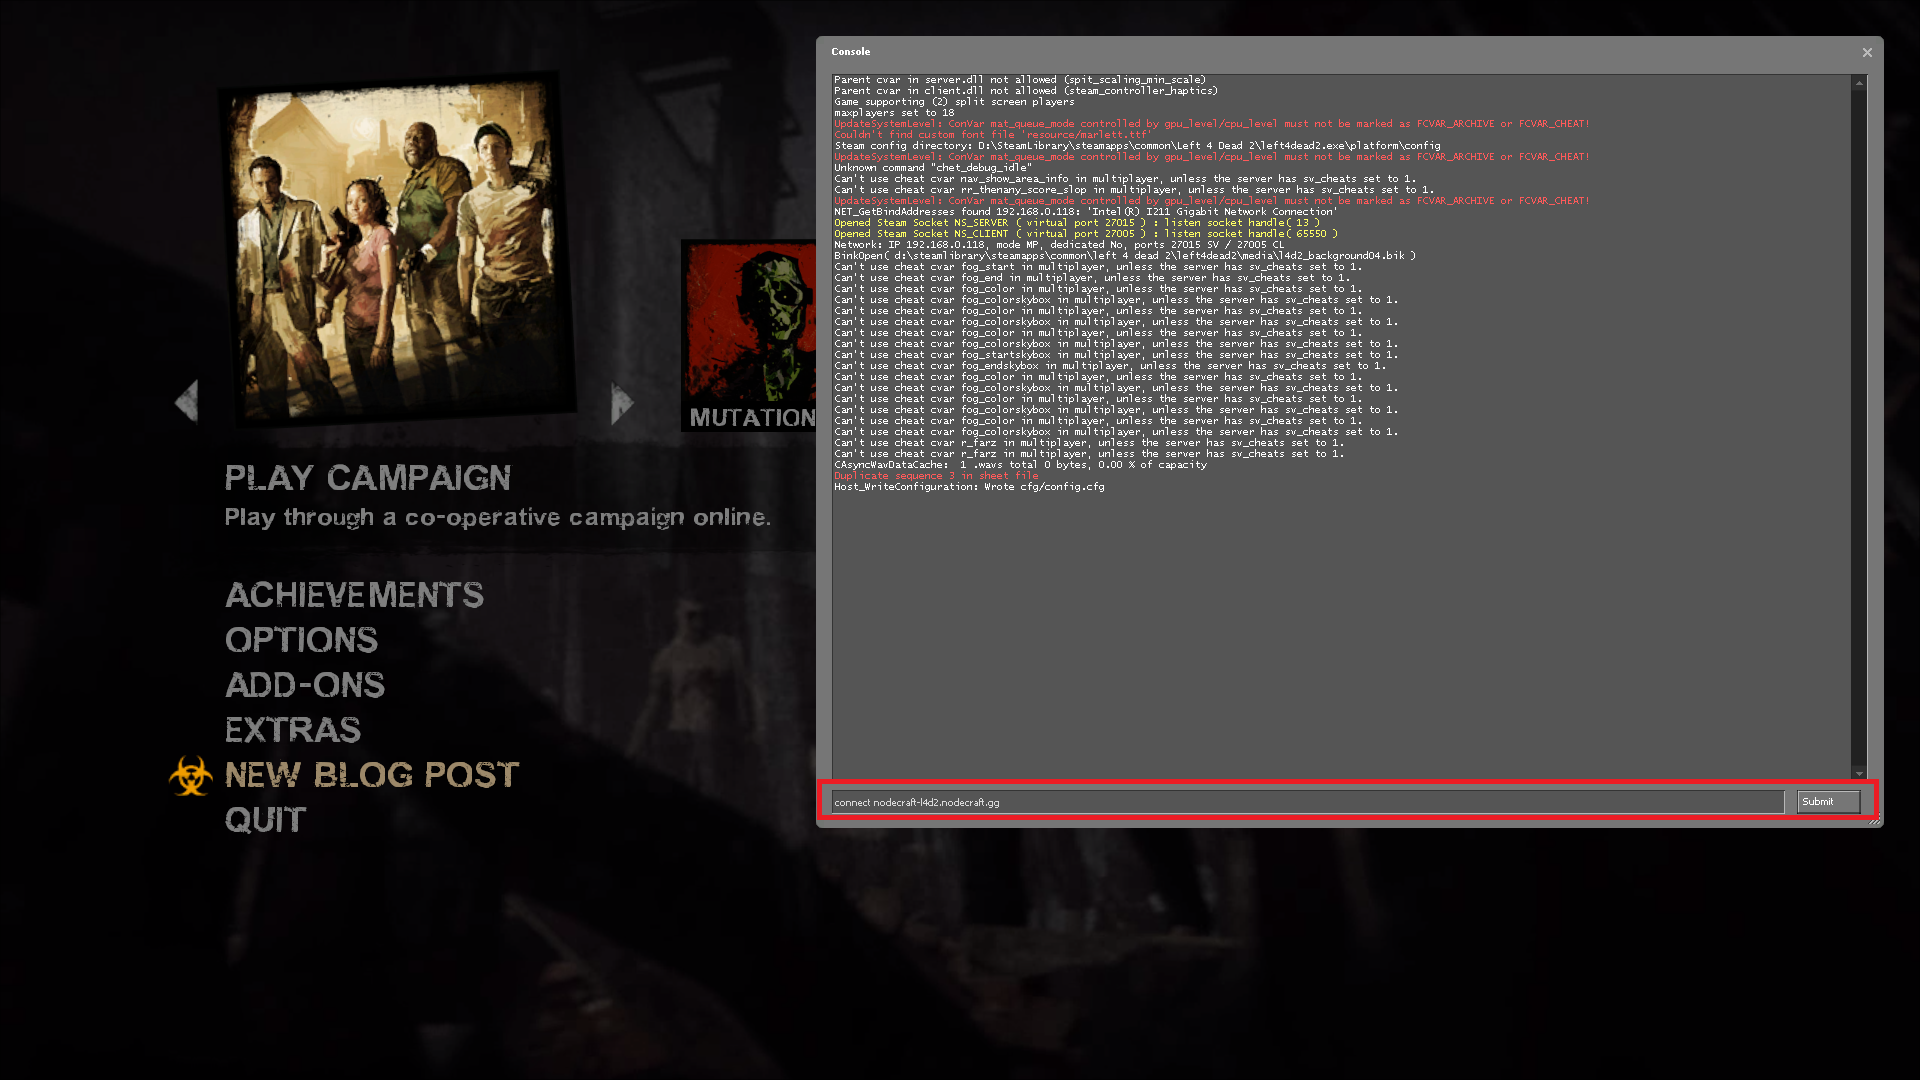 Entering the connect command for Left 4 Dead 2 in the Developer Console